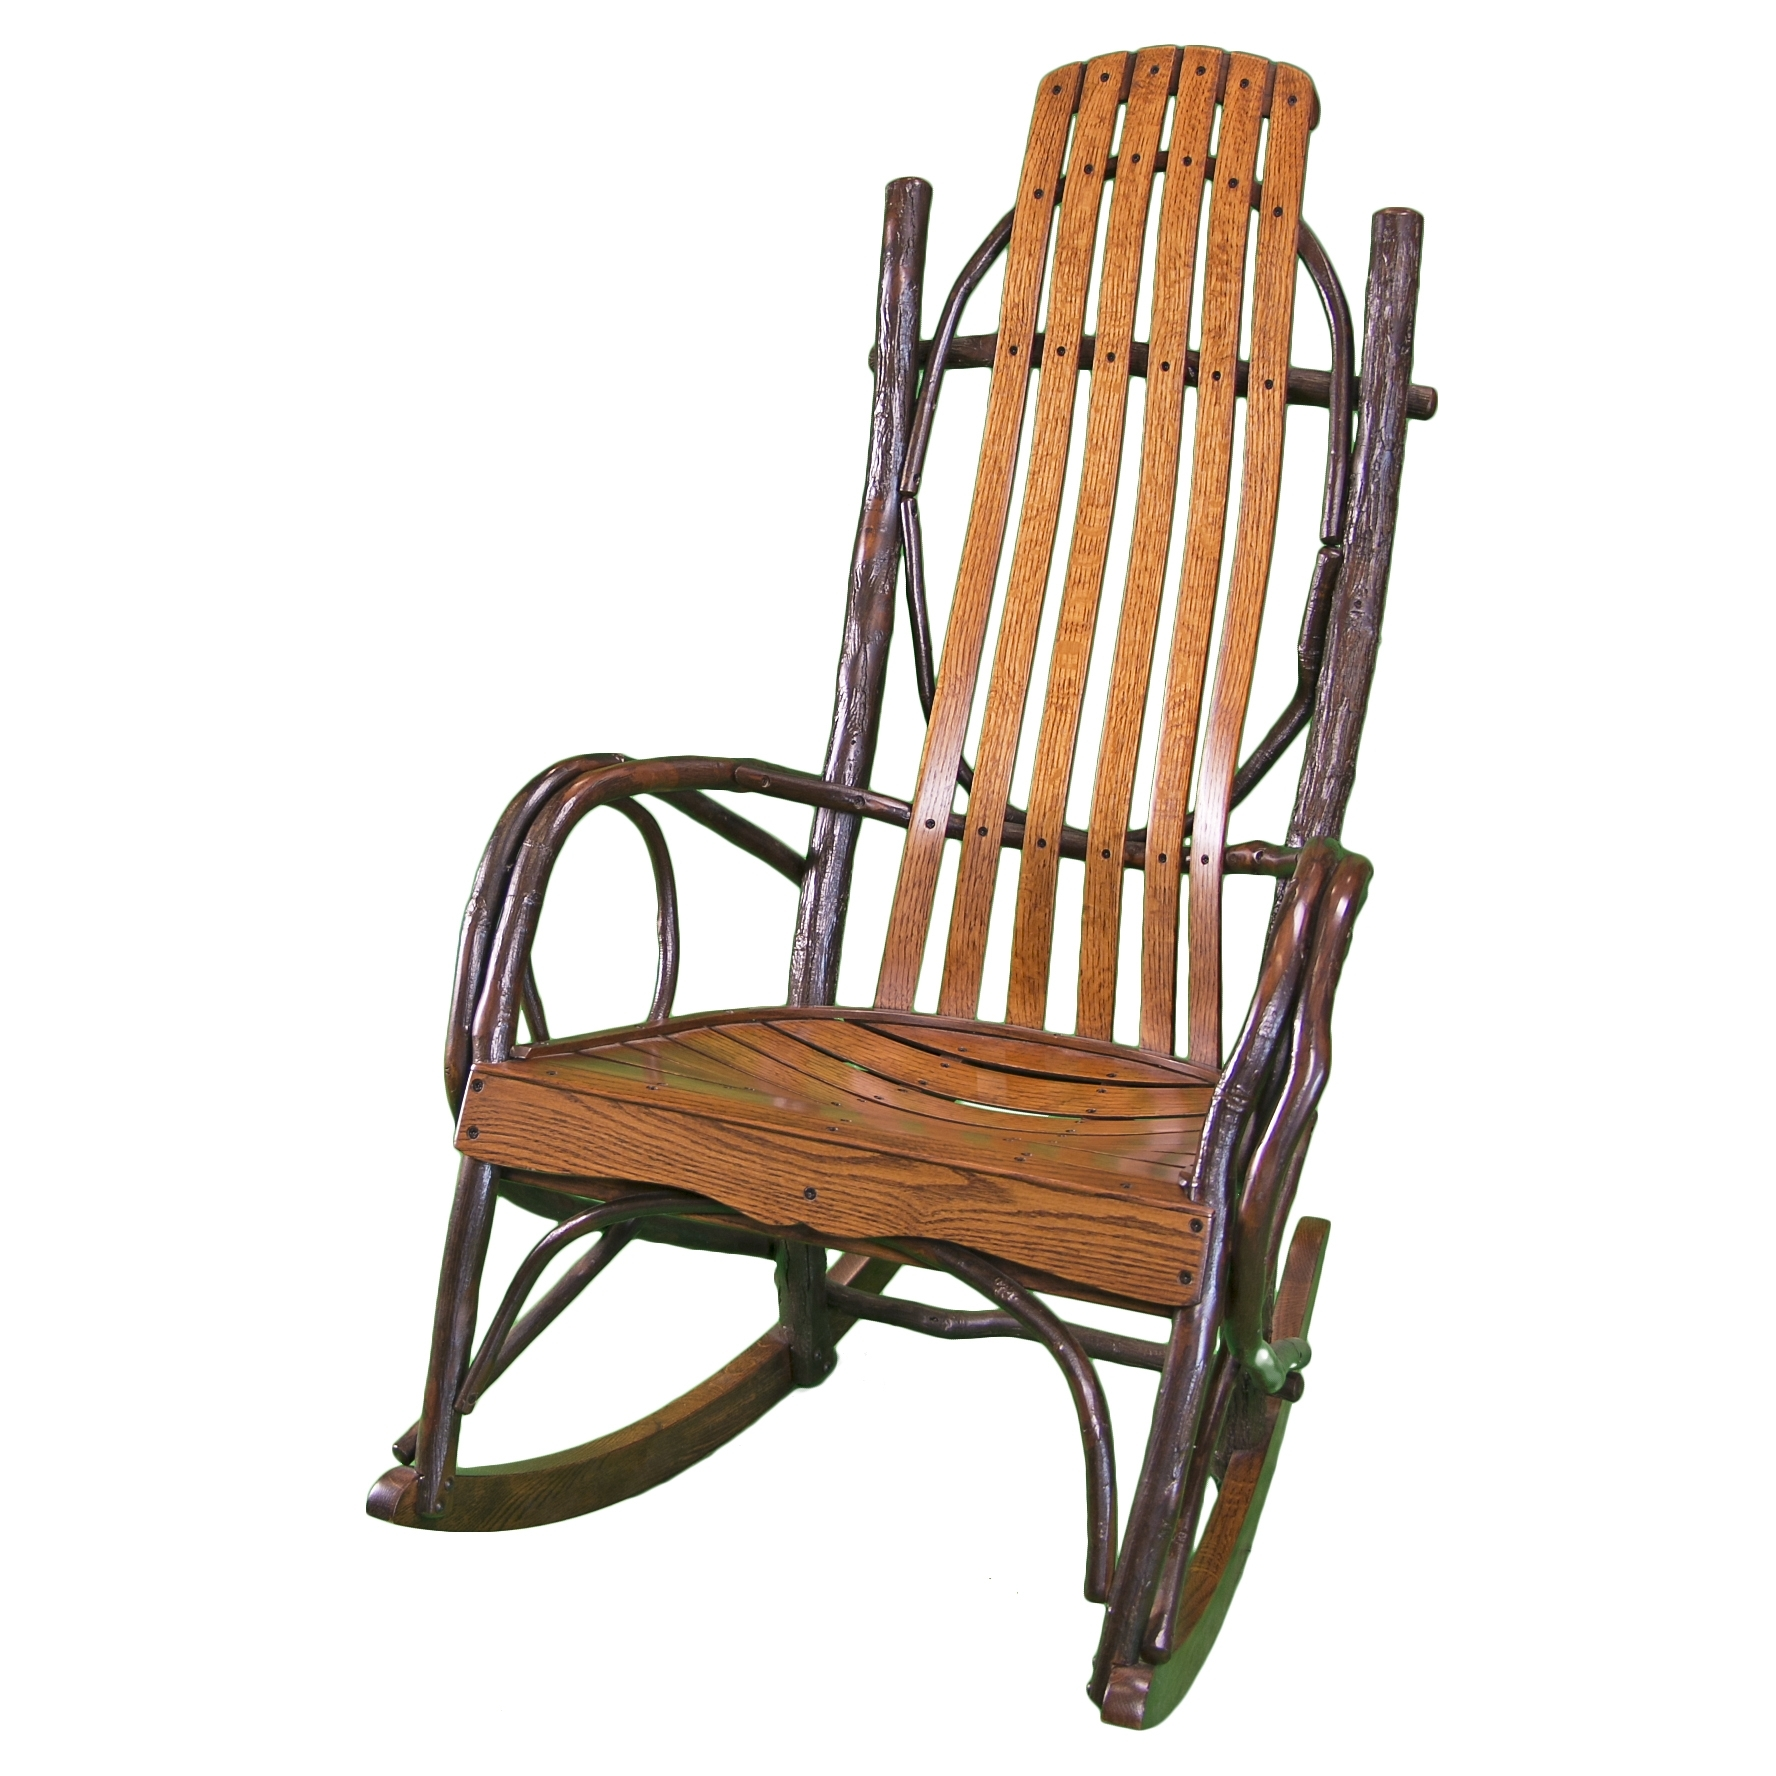 Most Recently Released Rocking Chair Outdoor Wooden Regarding Wooden Rocking Chair – Timber Lodge Furniture (View 10 of 15)